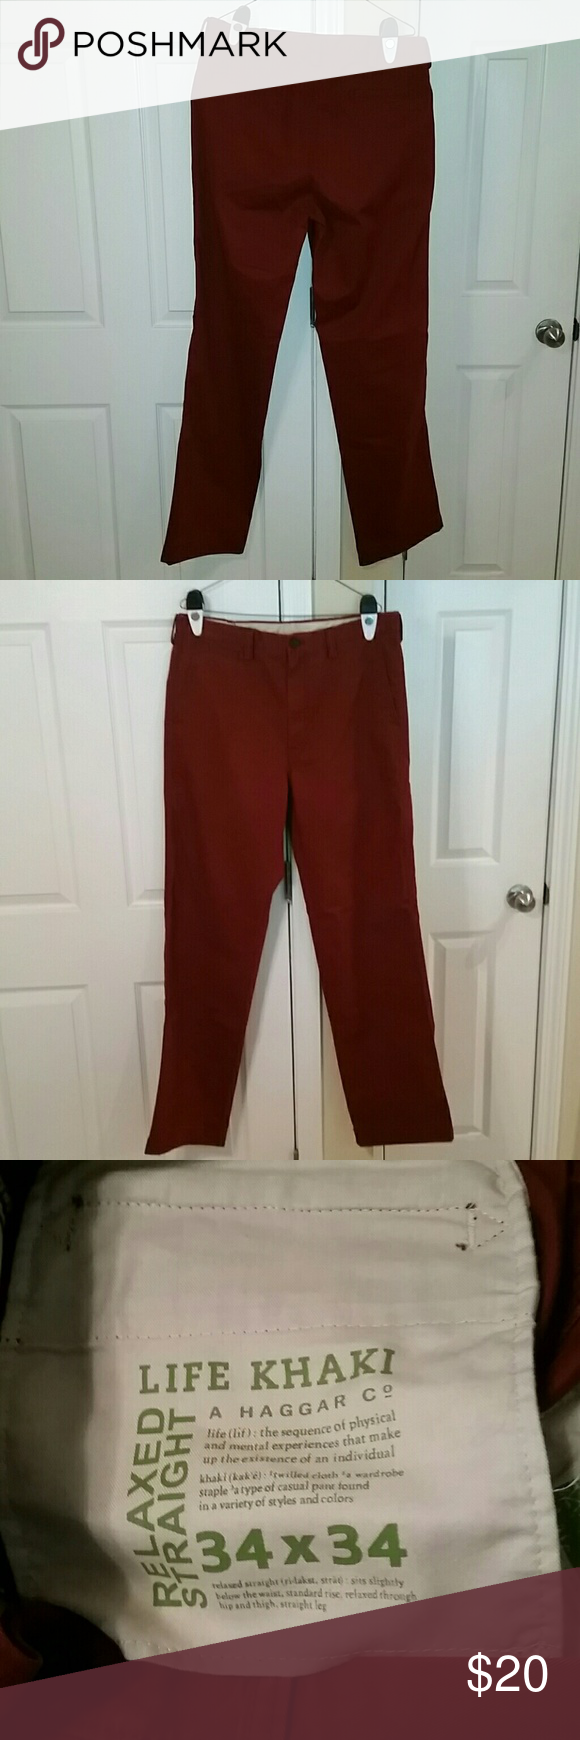 Life Khaki by Haggar Co. Relaxed Straight Khakis A pair of Life Khaki by Haggar Co. Relaxed Straight Khakis. Size 34x34. New and never worn, no tags. Color is rustic (red or burgundy, see last picture for color). Please email me if interested. Thanks! Life Khaki by Haggar Co. Pants Chinos & Khakis